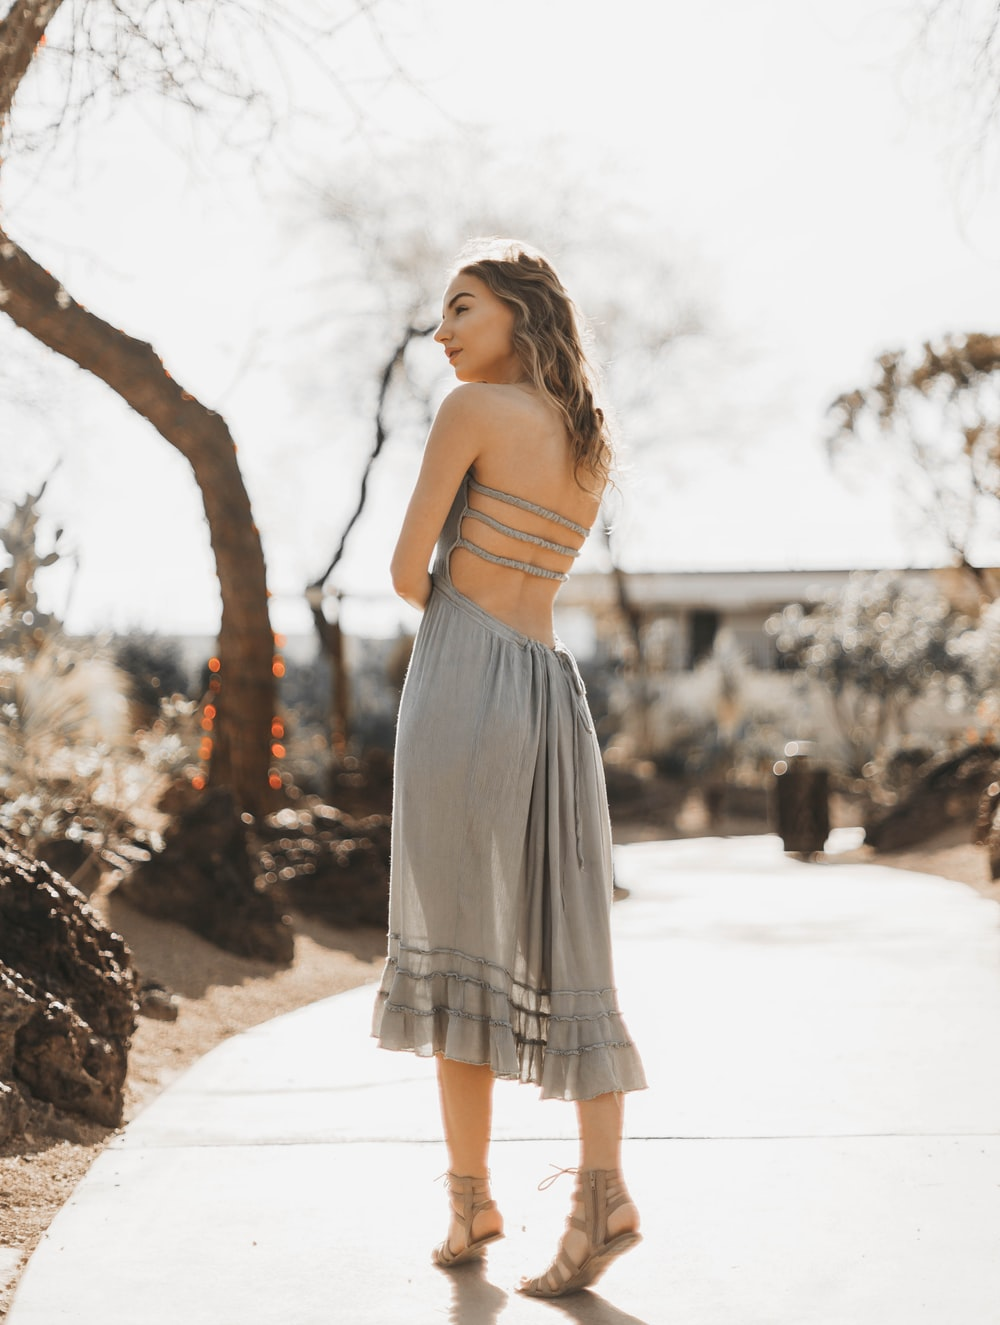 woman wearing gray halter dress standing on pathway